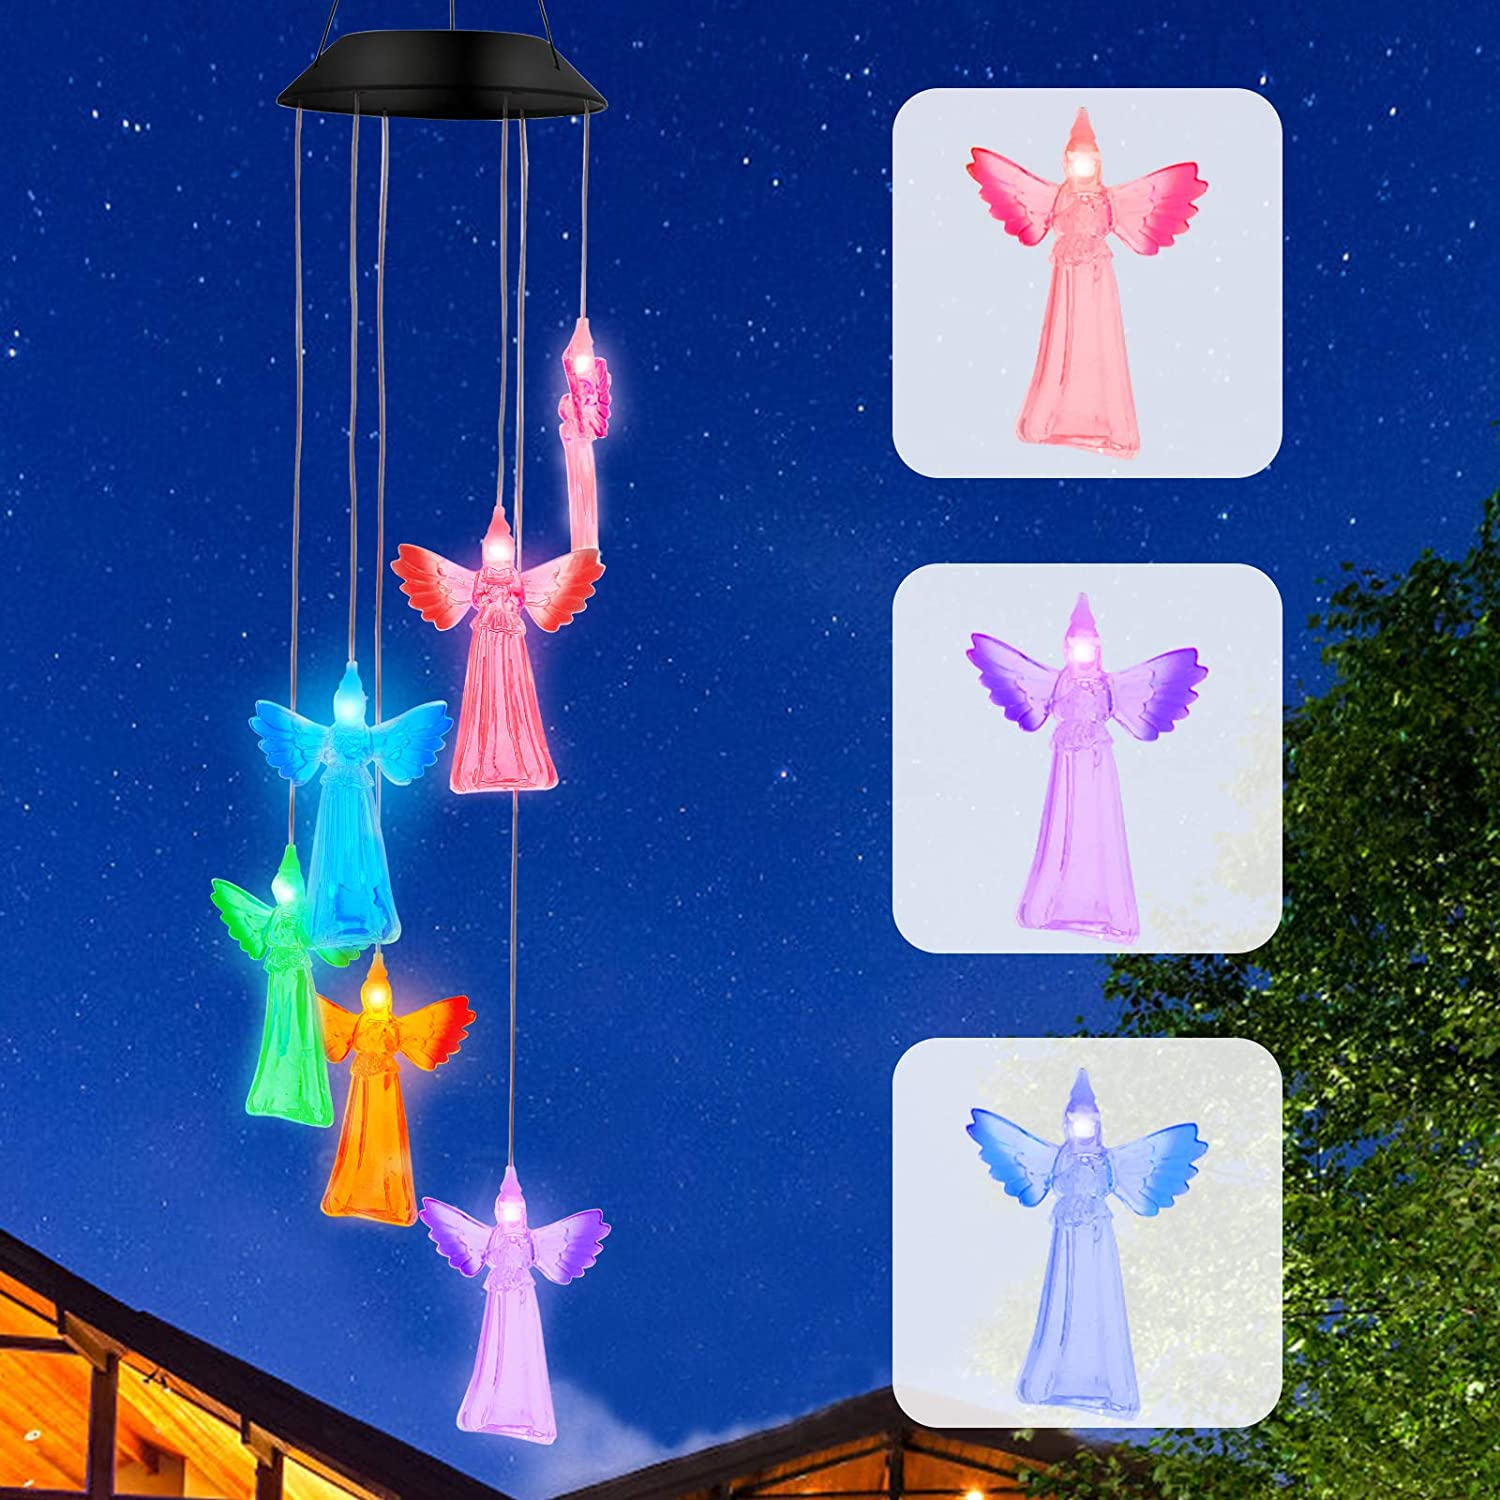 NICEAO Solar Wind Chimes, Solar Lights Outdoor Decorative Memorial Angel Led Windchimes Garden Decor for Yard Art Outdoor Patio Decorations, Small Gardening Gifts for Women Mom